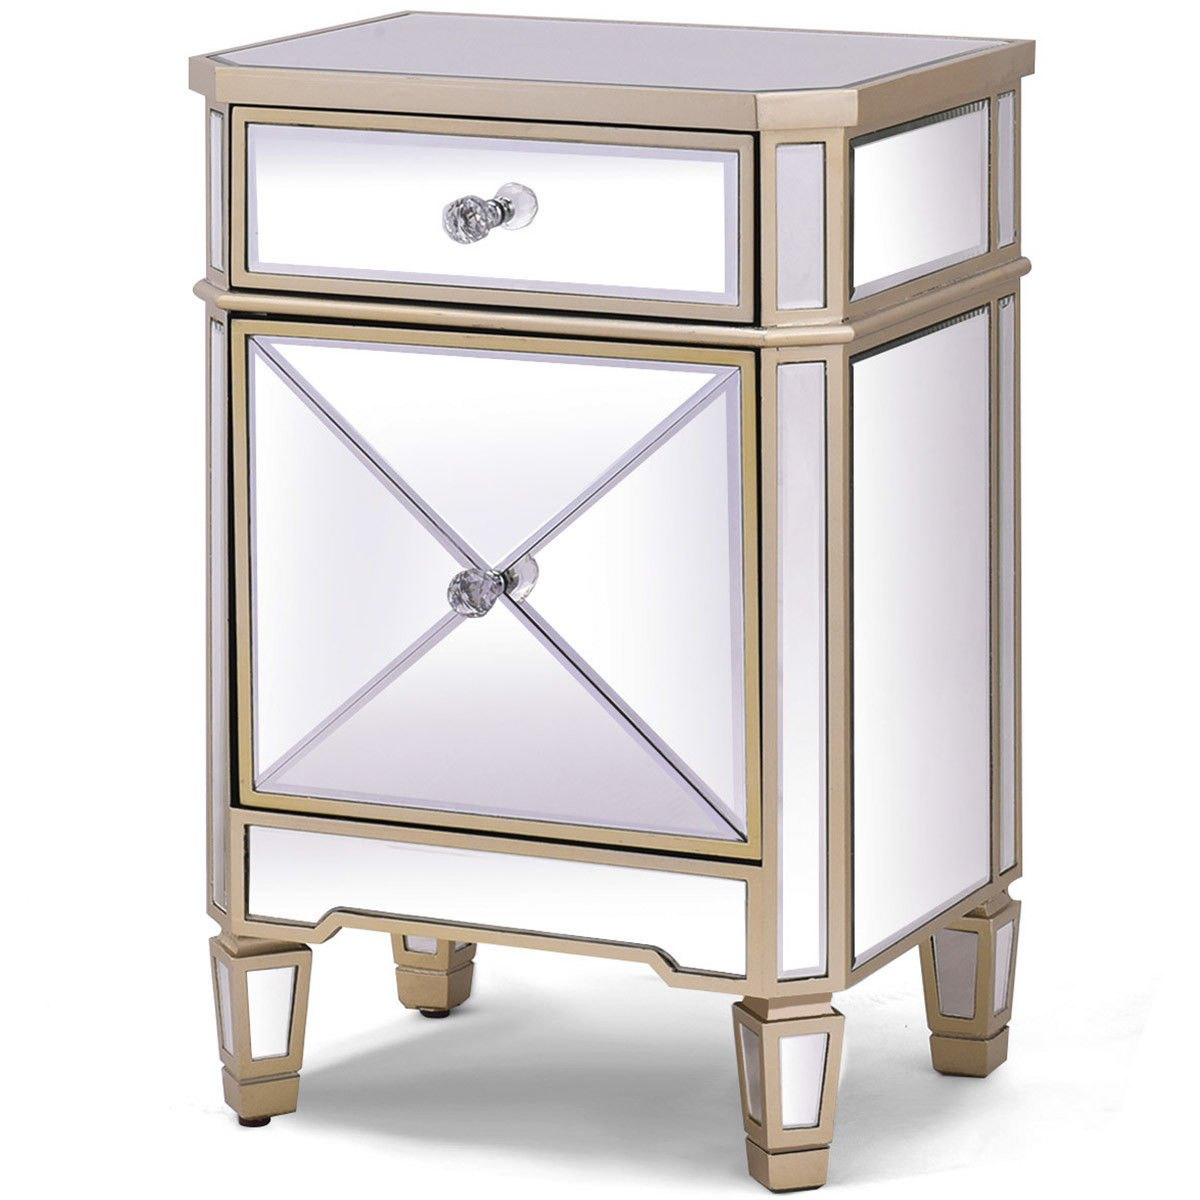 way modern mirrored nightstand storage accent cabinet table chest drawer with frog small living room decorating ideas cool tables cordless lamps light pier one dining furniture